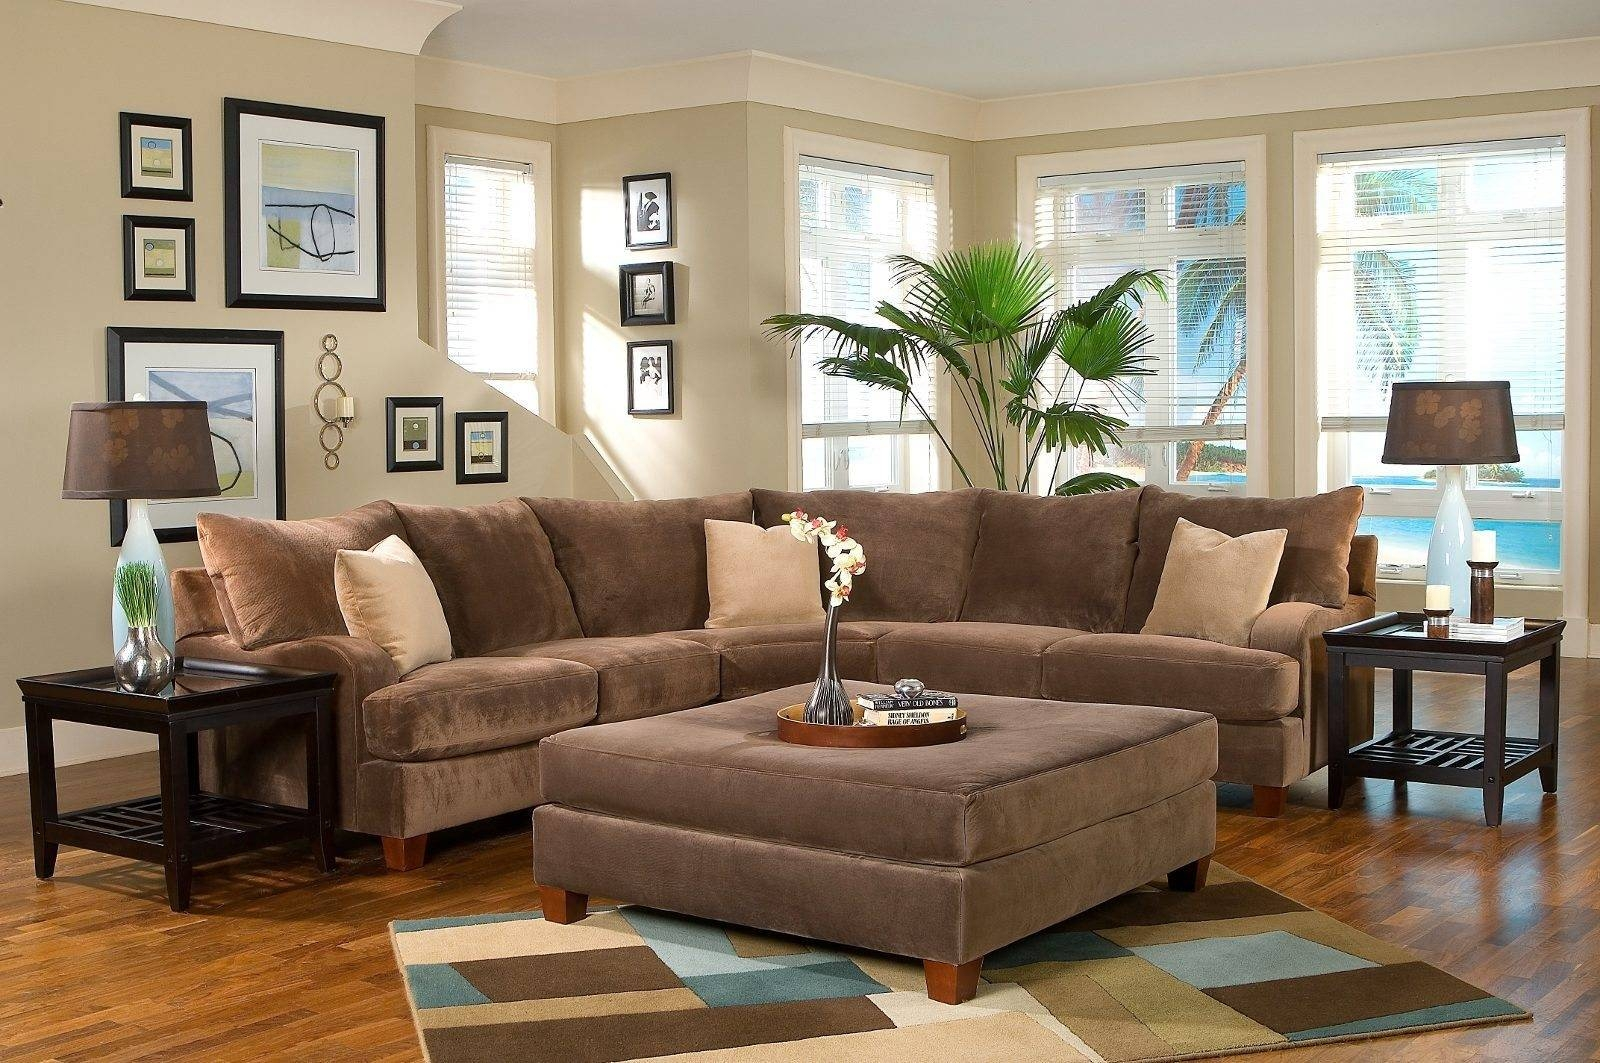 Furniture Home: Deep Seated Leather Sofa Inspiring Deep Seated intended for Deep Cushioned Sofas (Image 13 of 30)